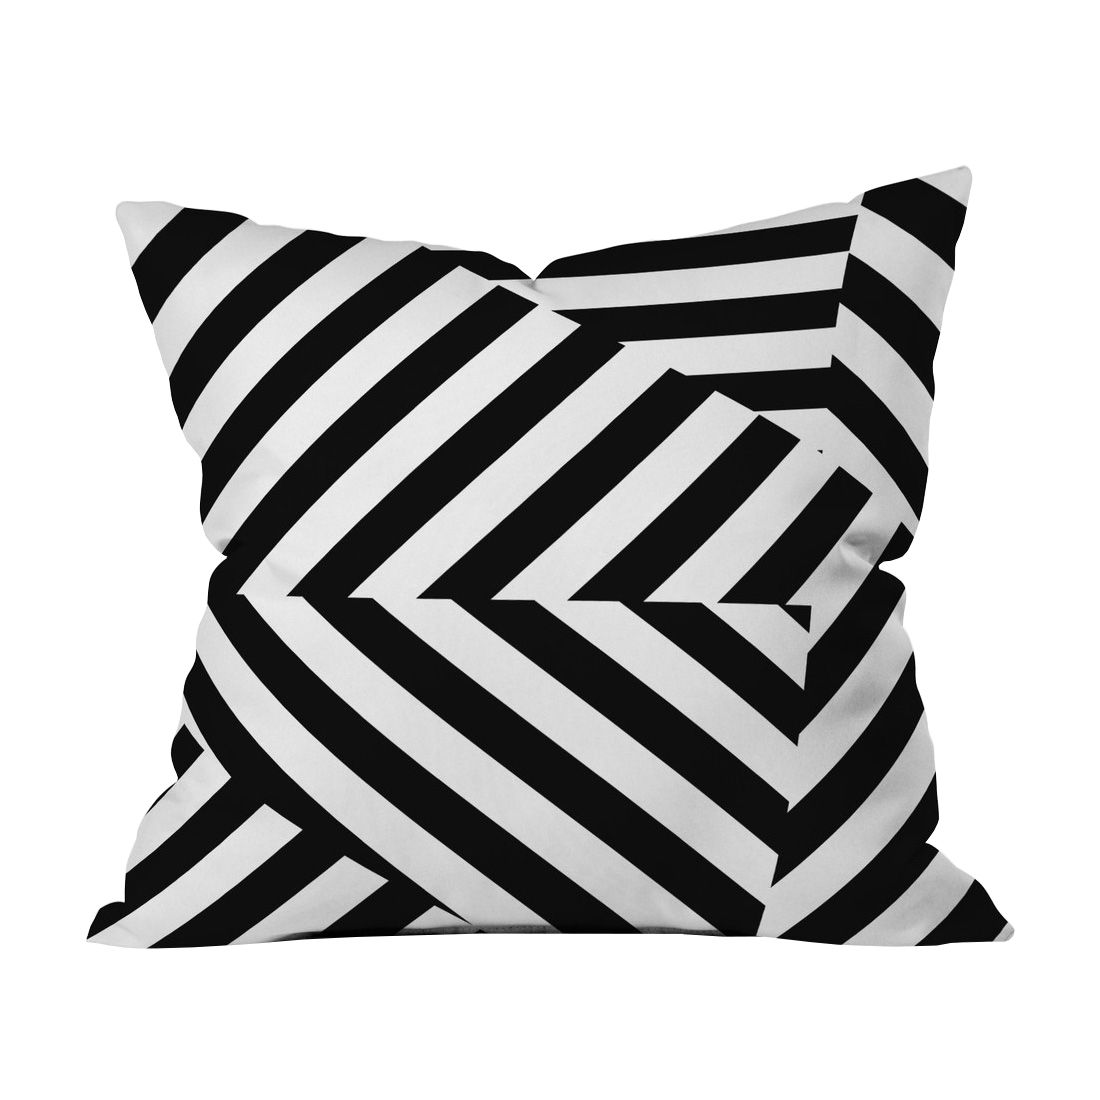 Striking black and white diagonals come together on one side in the modern cinch throw pillow